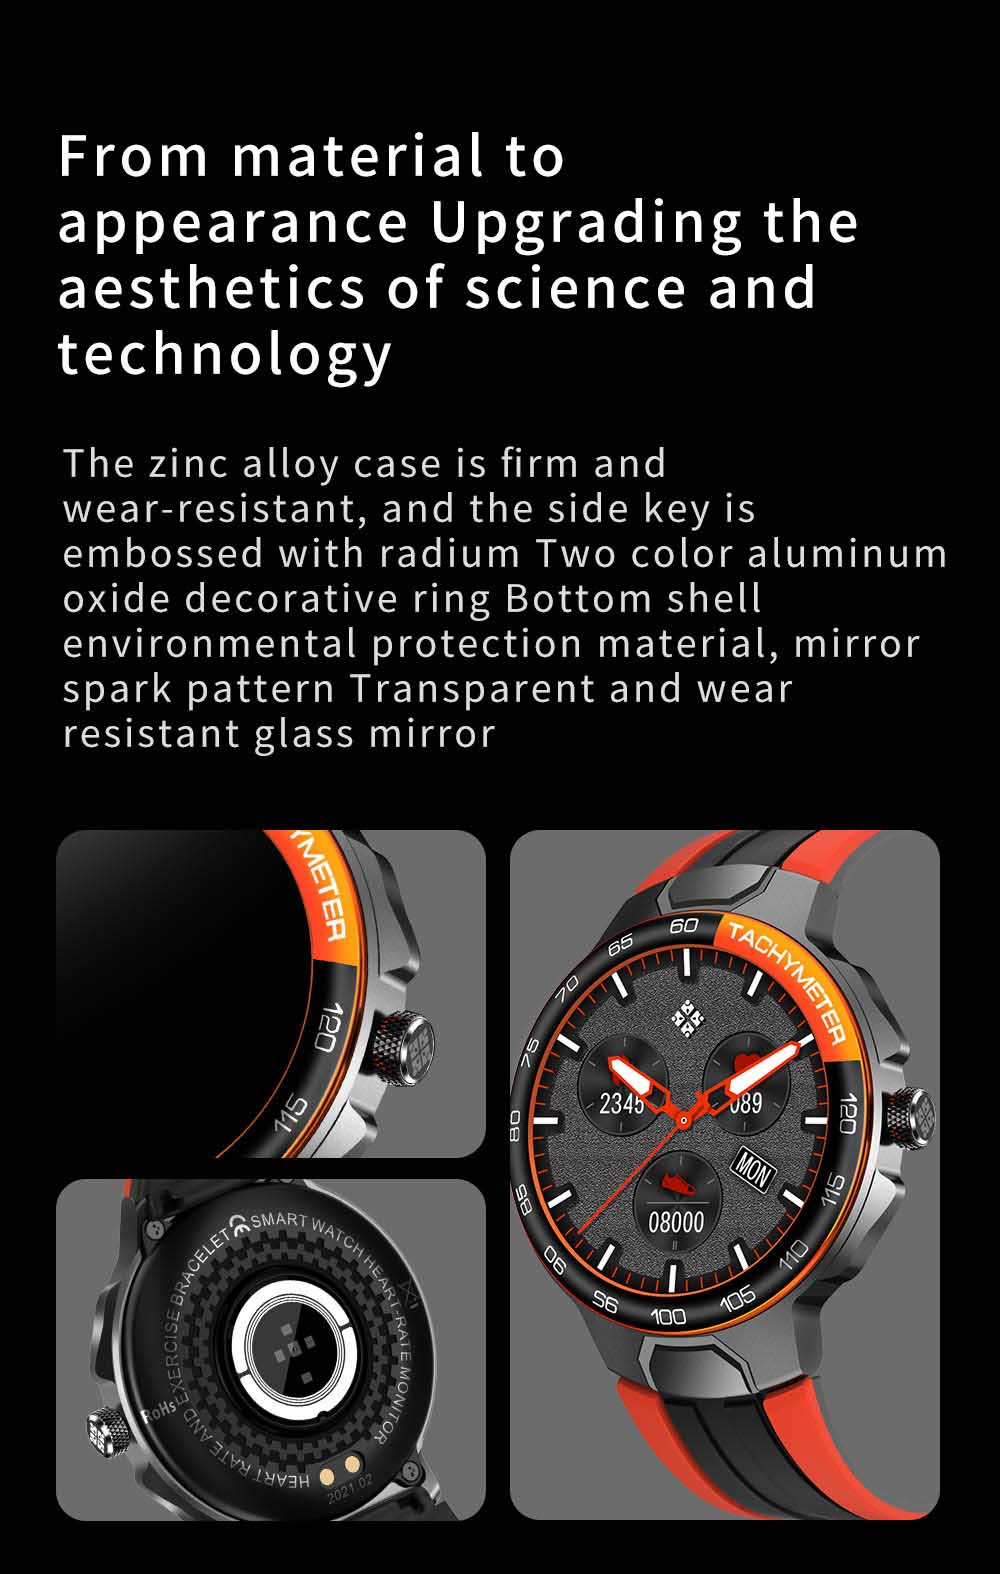 Ha20b14945882473a890fc72bfbc3afb6e Smart Watch Men Women IP68 Waterproof Bluetooth 5.0 24 Exercise Modes Smartwatch E1-5 Heart Rate Monitoring for Android Iosr A